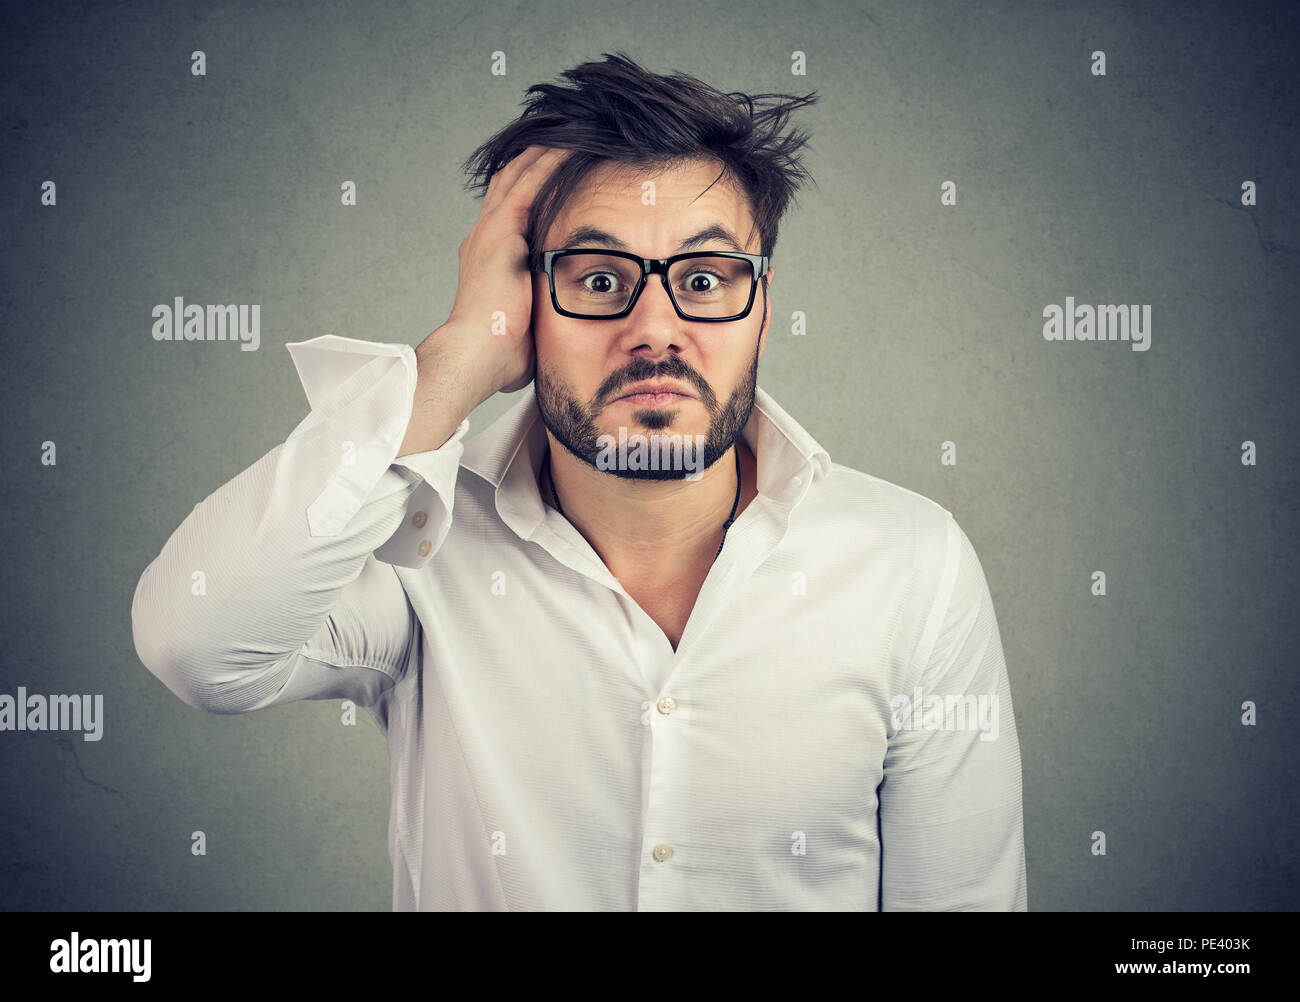 Young lost and dumbfounded man with hand on head wearing glasses and looking perplexed at camera on gray background - Stock Image